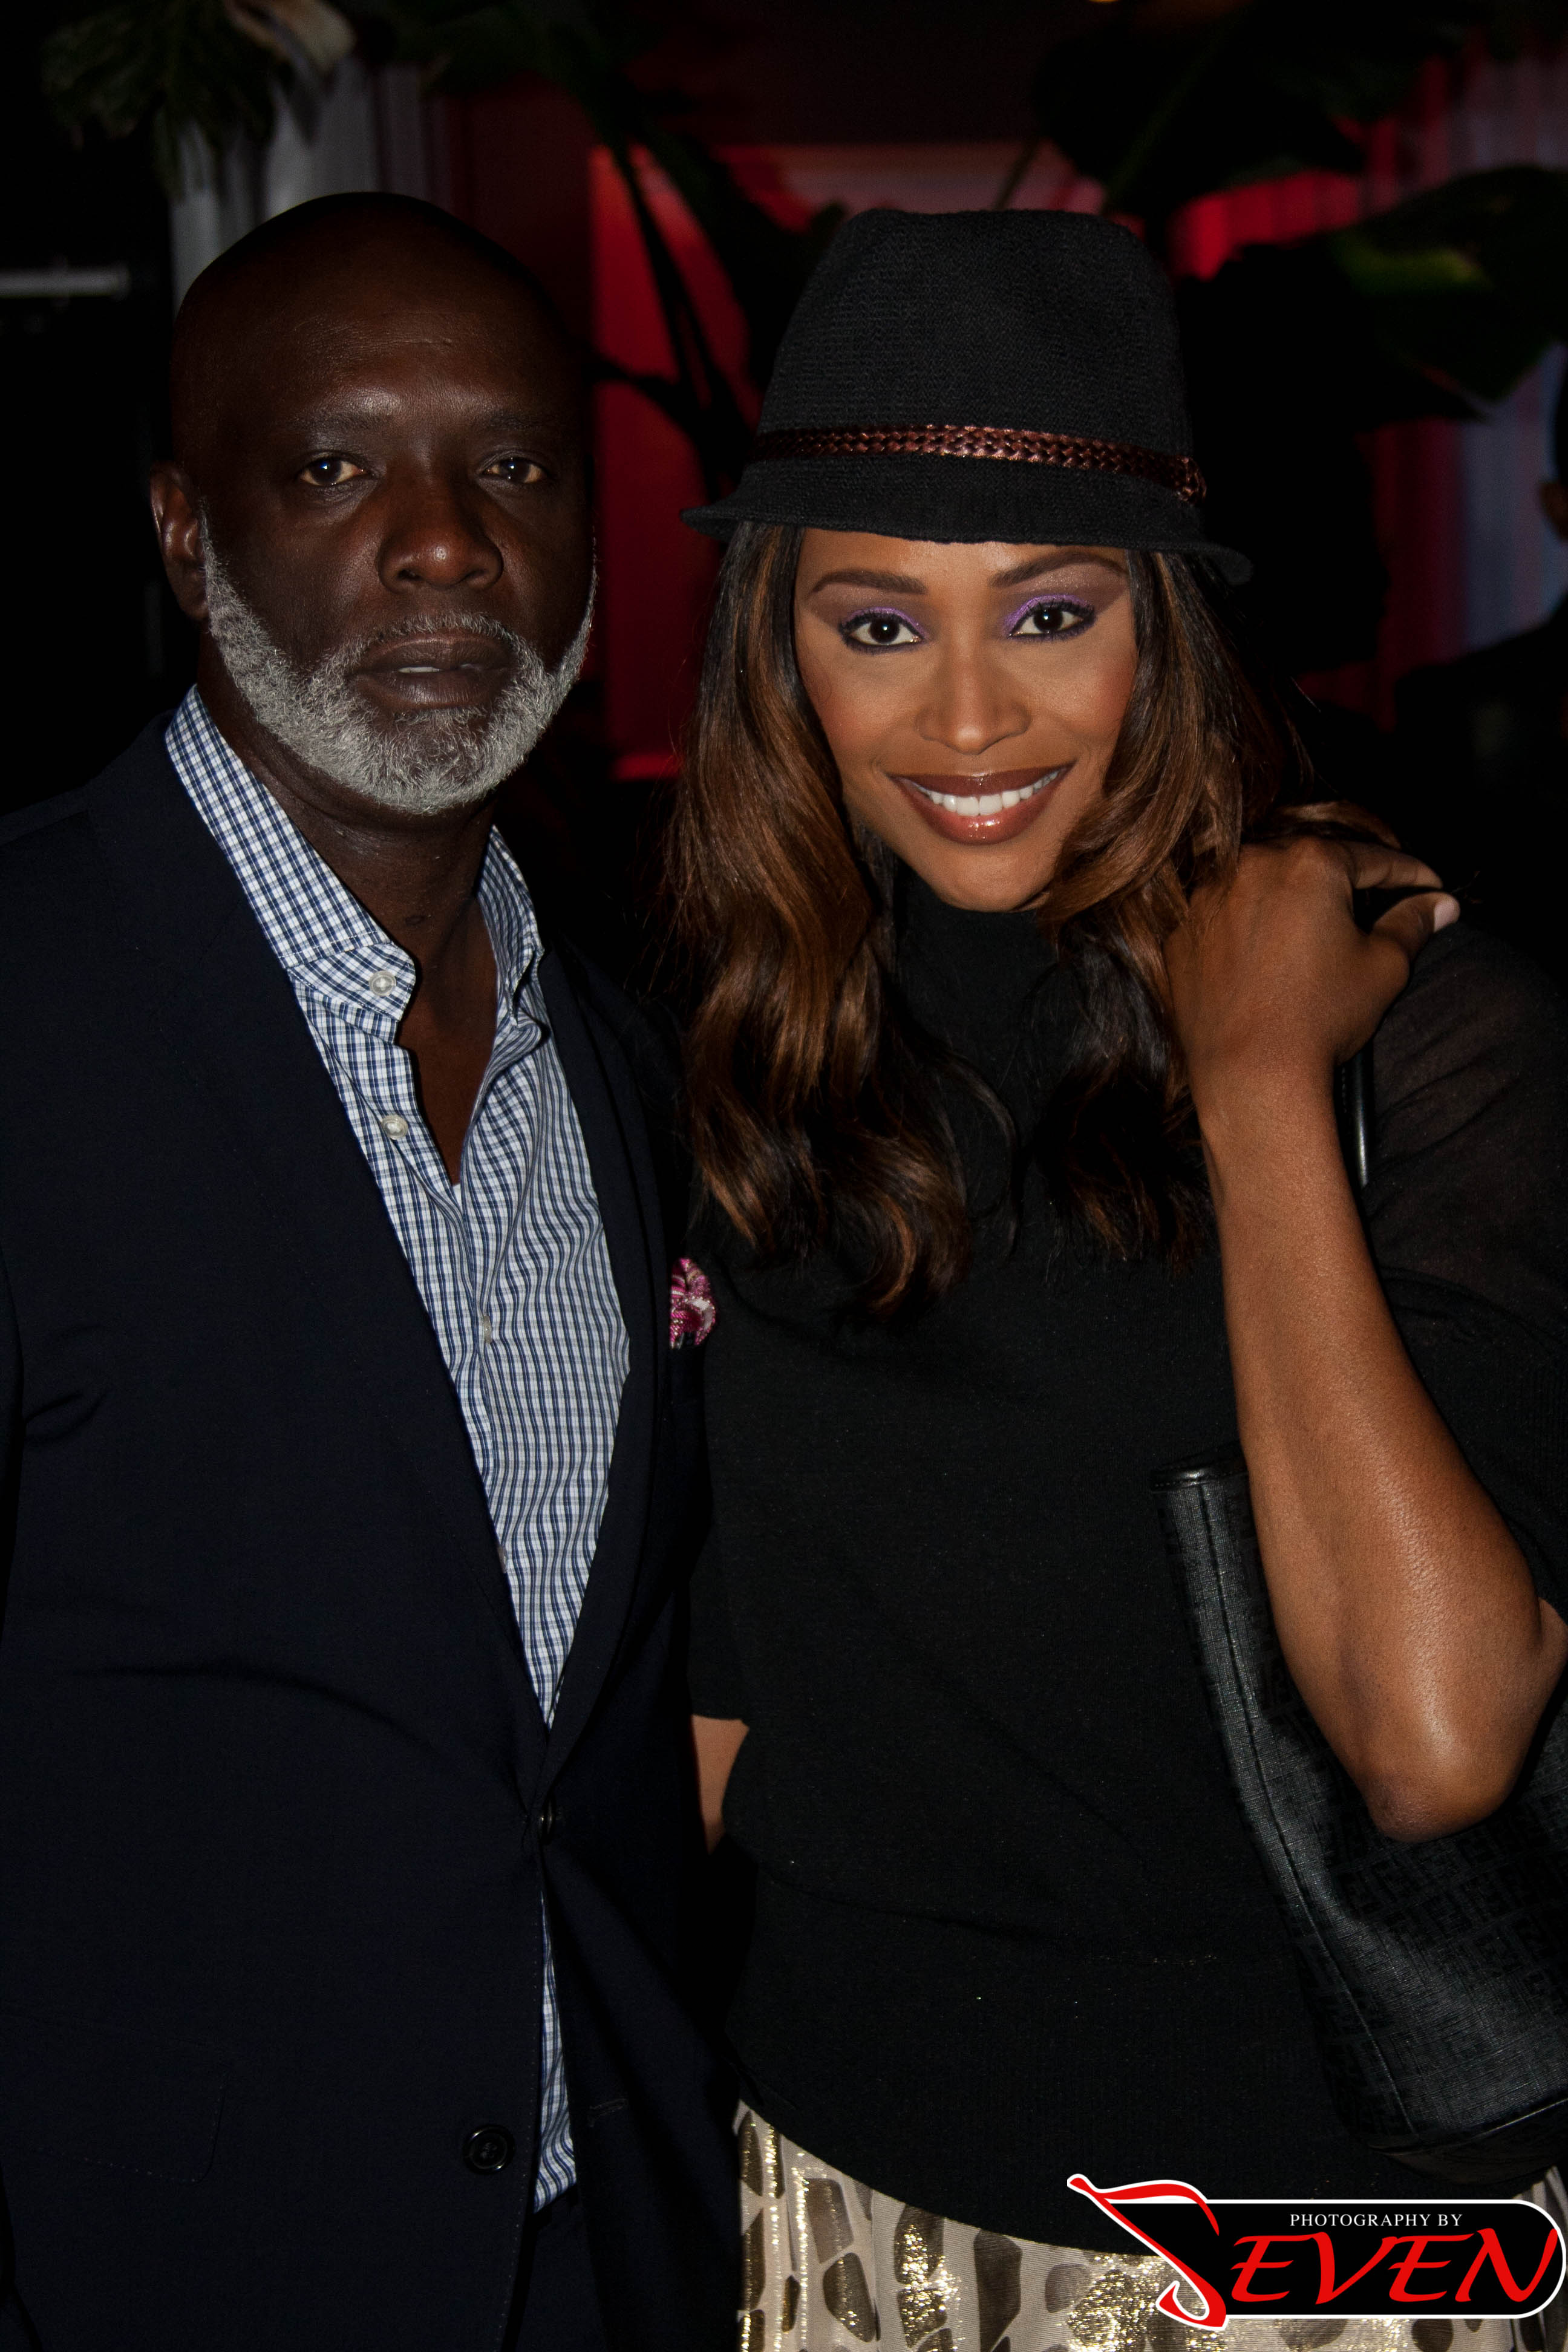 rhoa peter thomas-cynthia bailey-unscripted reality tv awards press conference-the jasmine brand